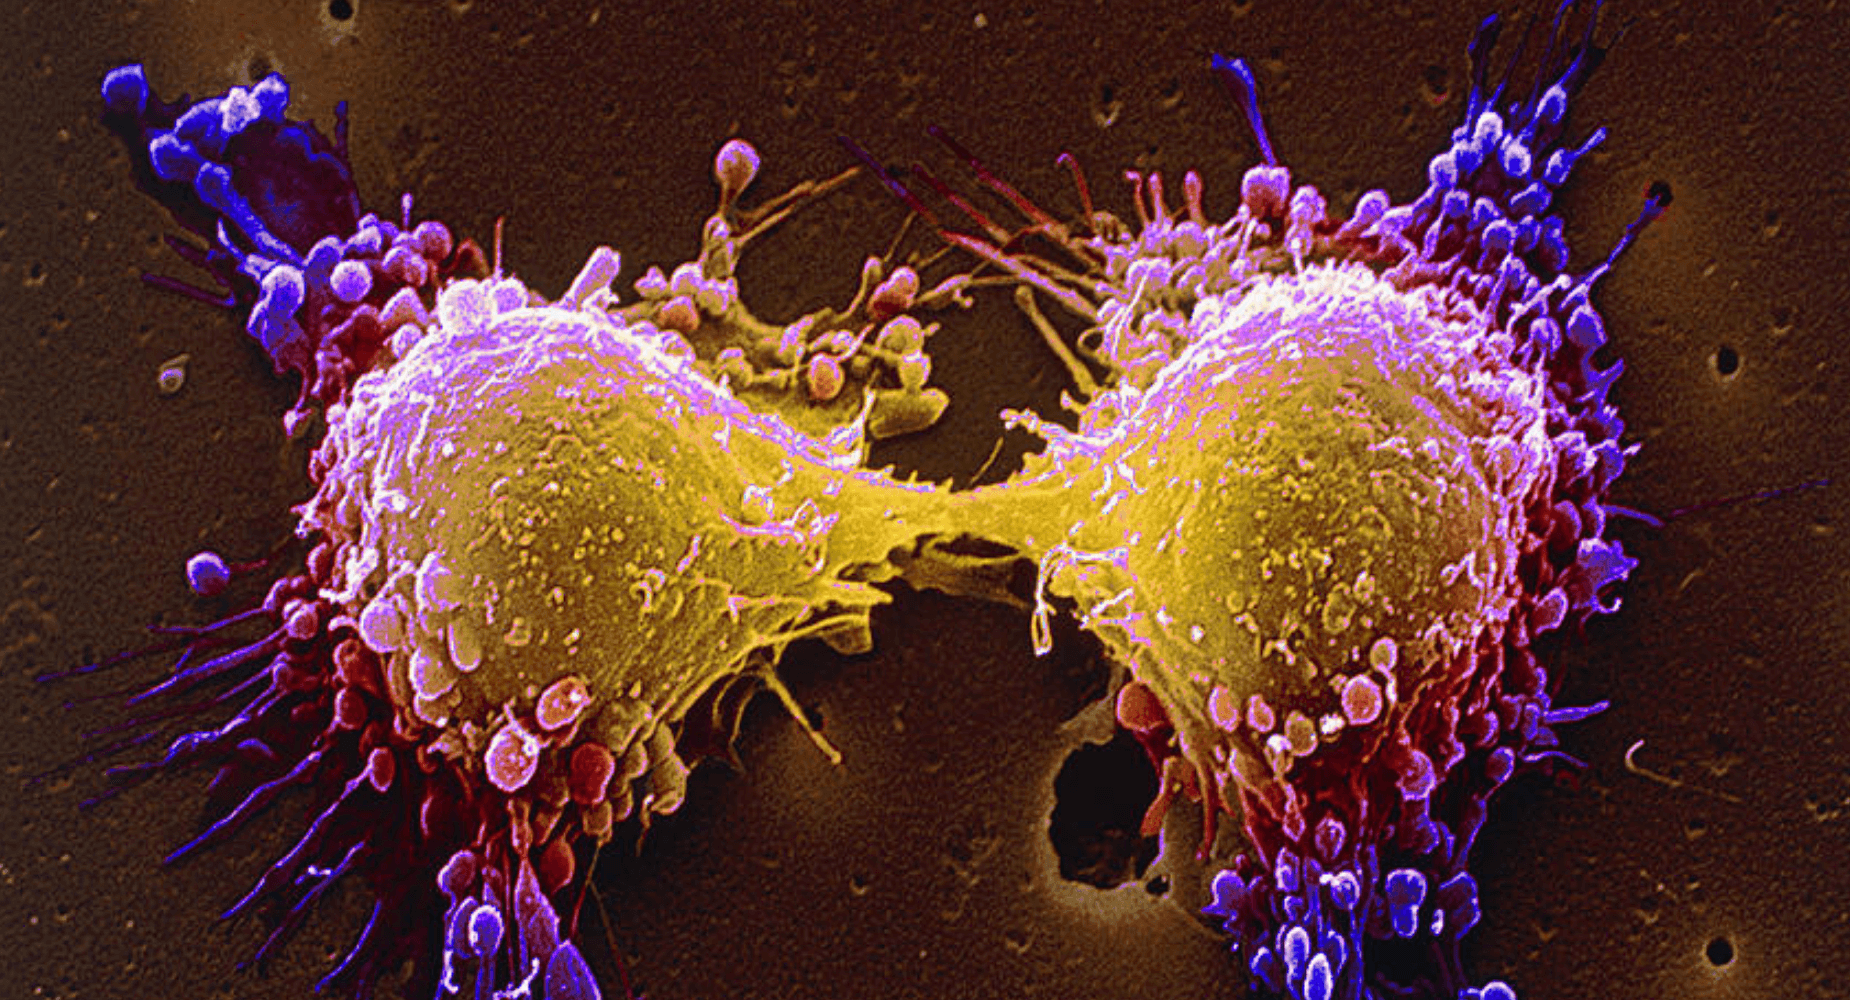 'Synthetic lethality' targets cancer cells by damaging vulnerable DNA